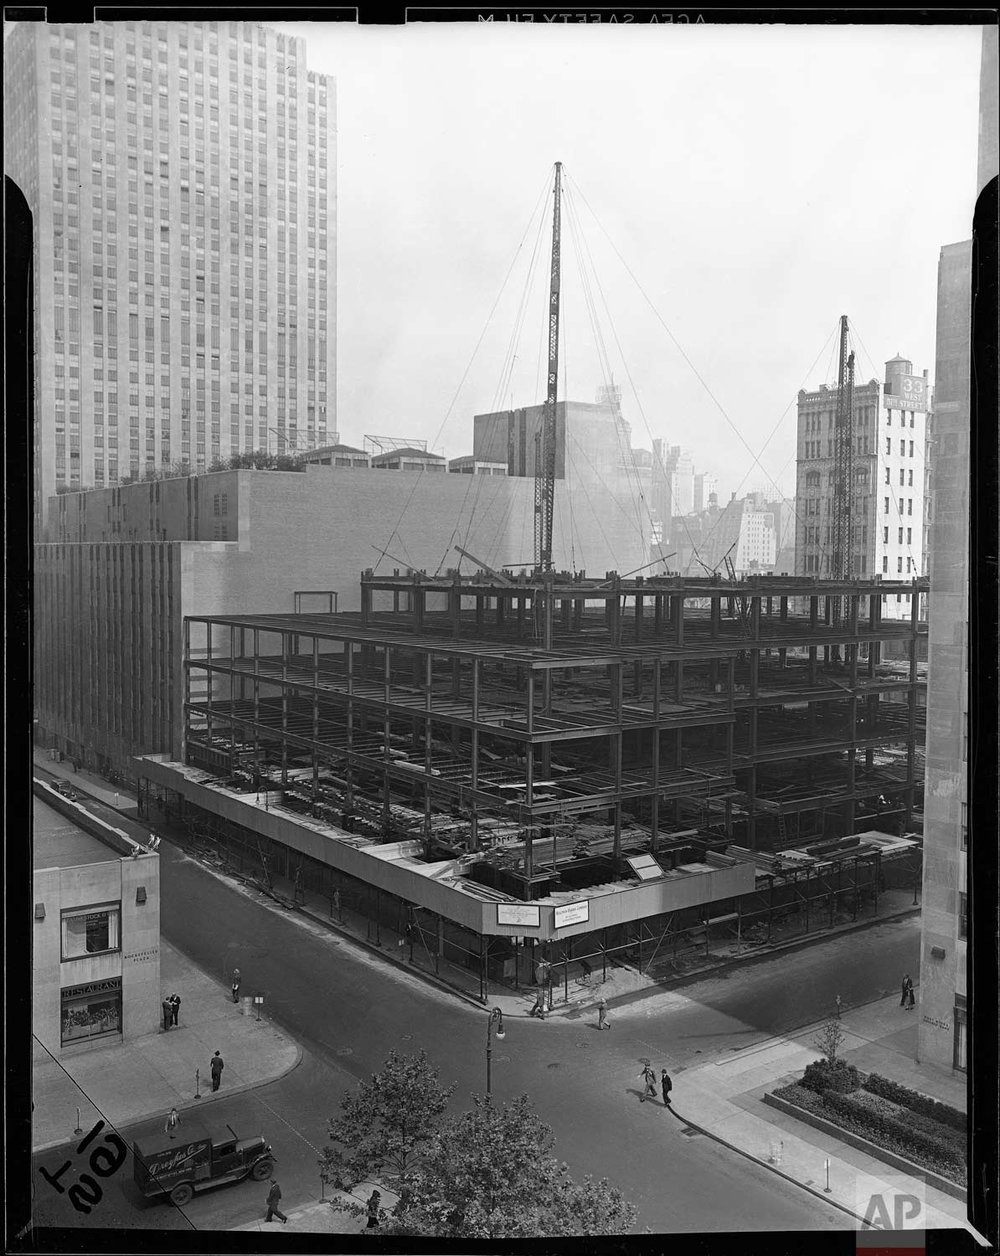 The new Associated Press building is shown under construction at Rockefeller Center, New York, May 17, 1938. (AP Photo/Corporate Archives)